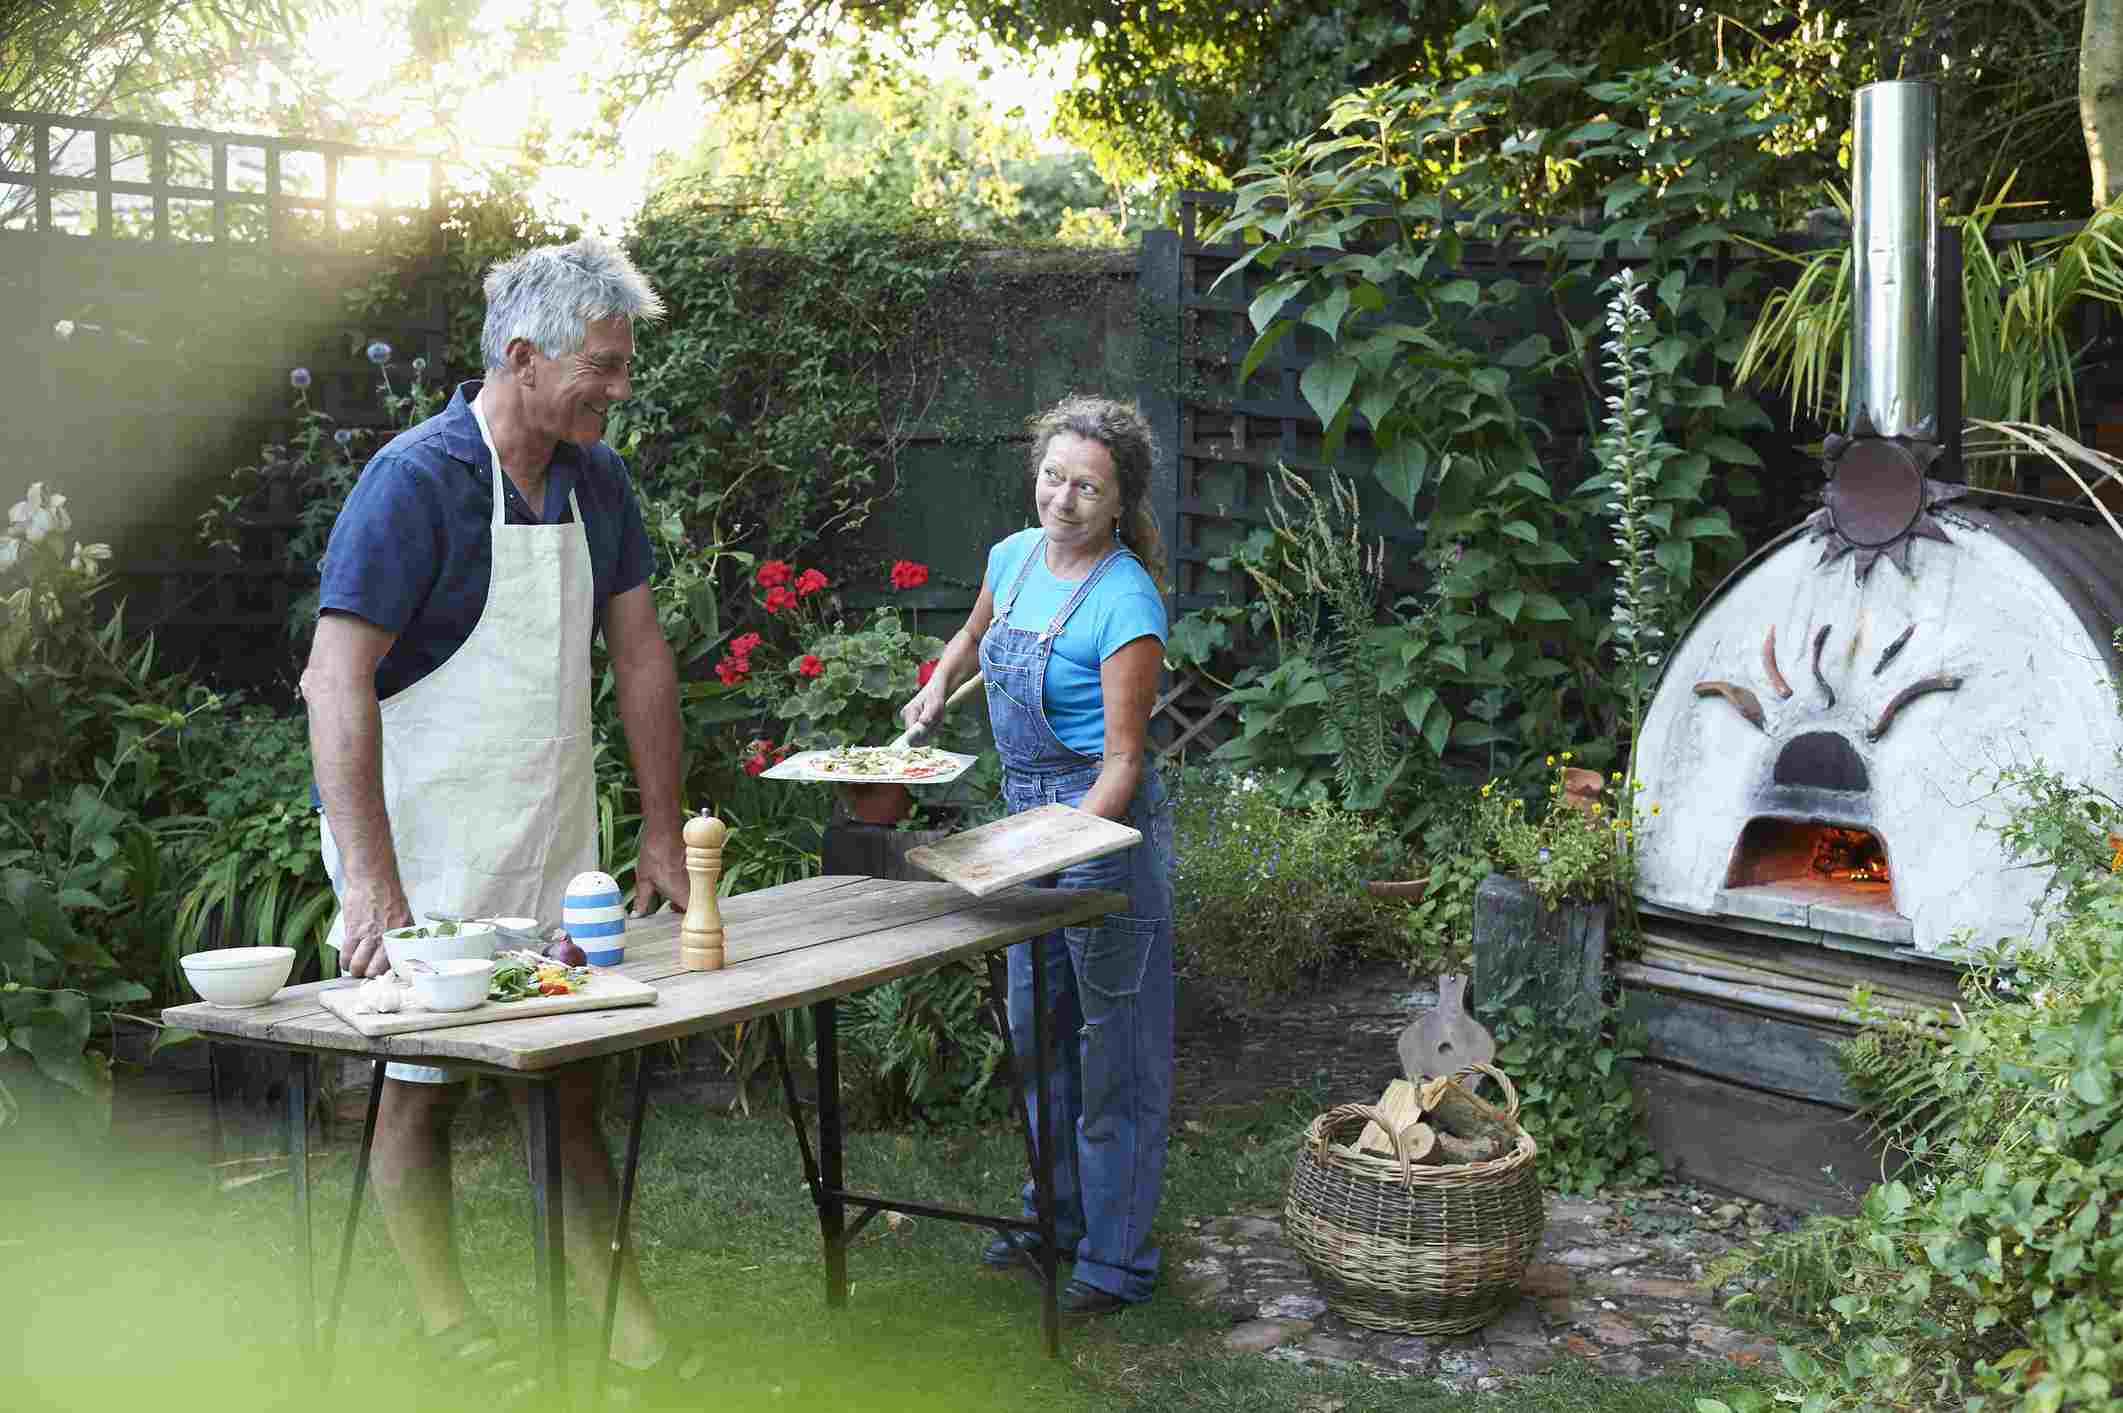 couple making pizza in backyard pizza oven